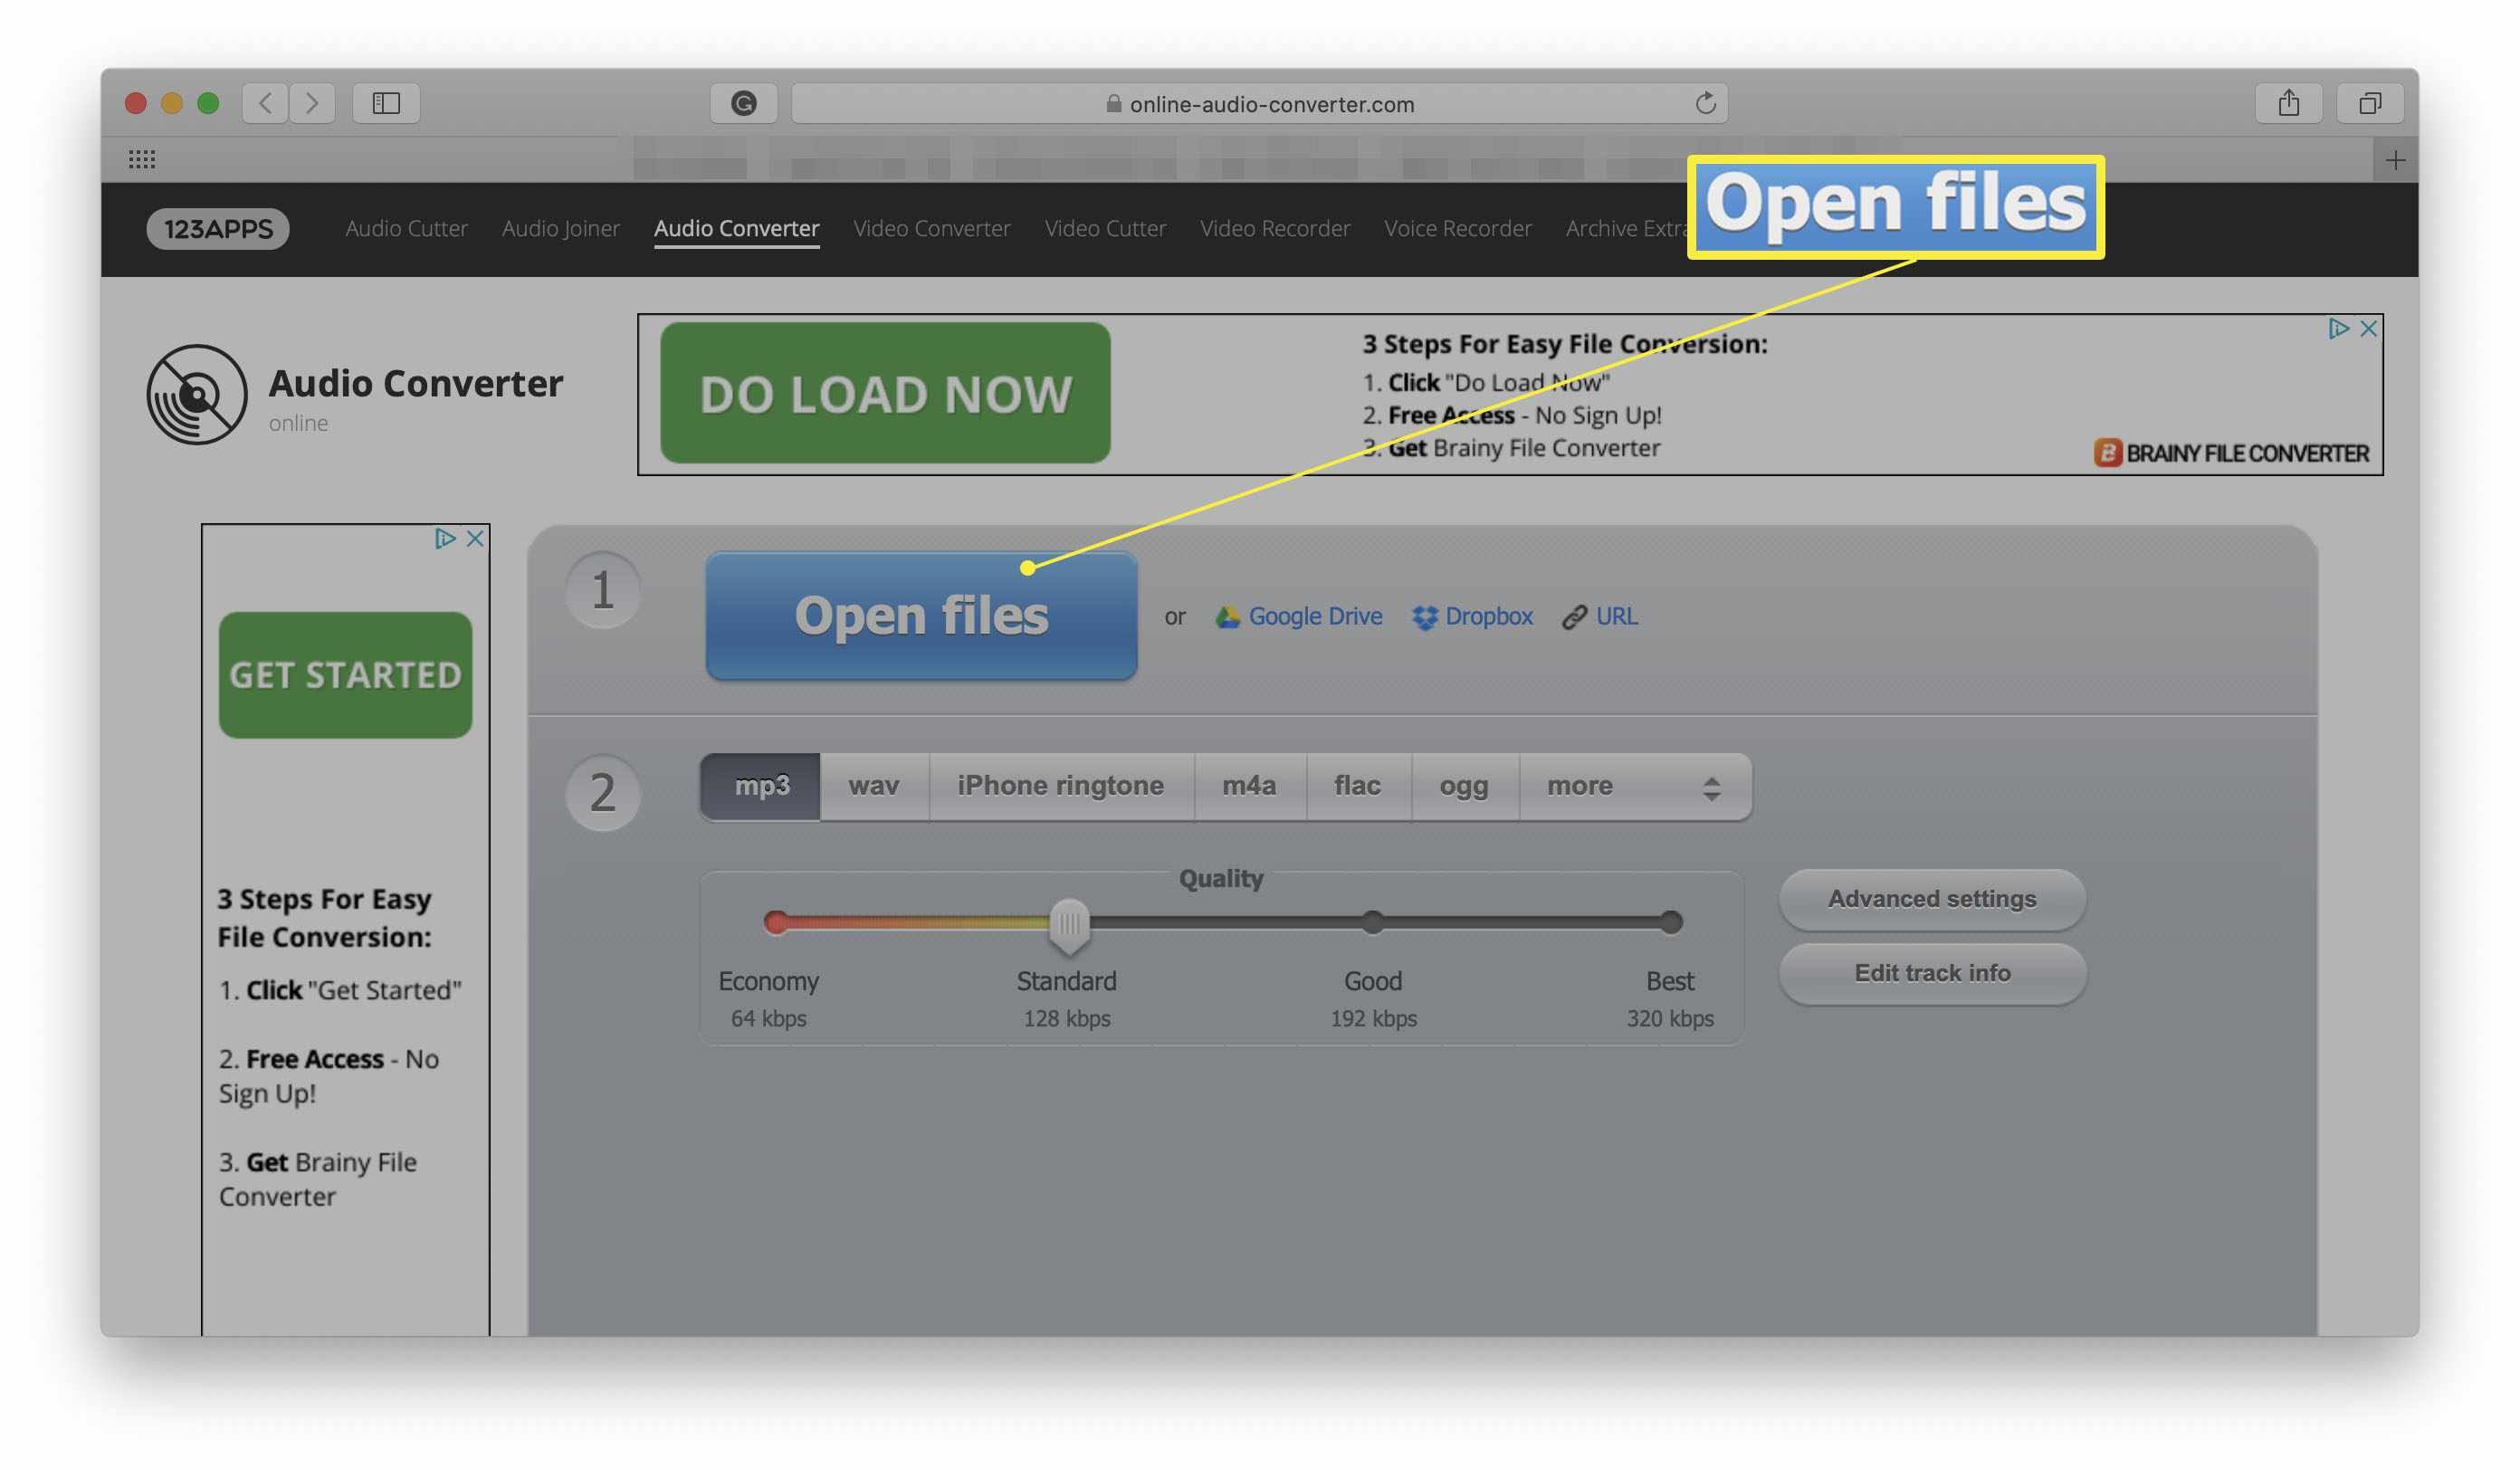 Online Audio Converter website with Open Files highlighted